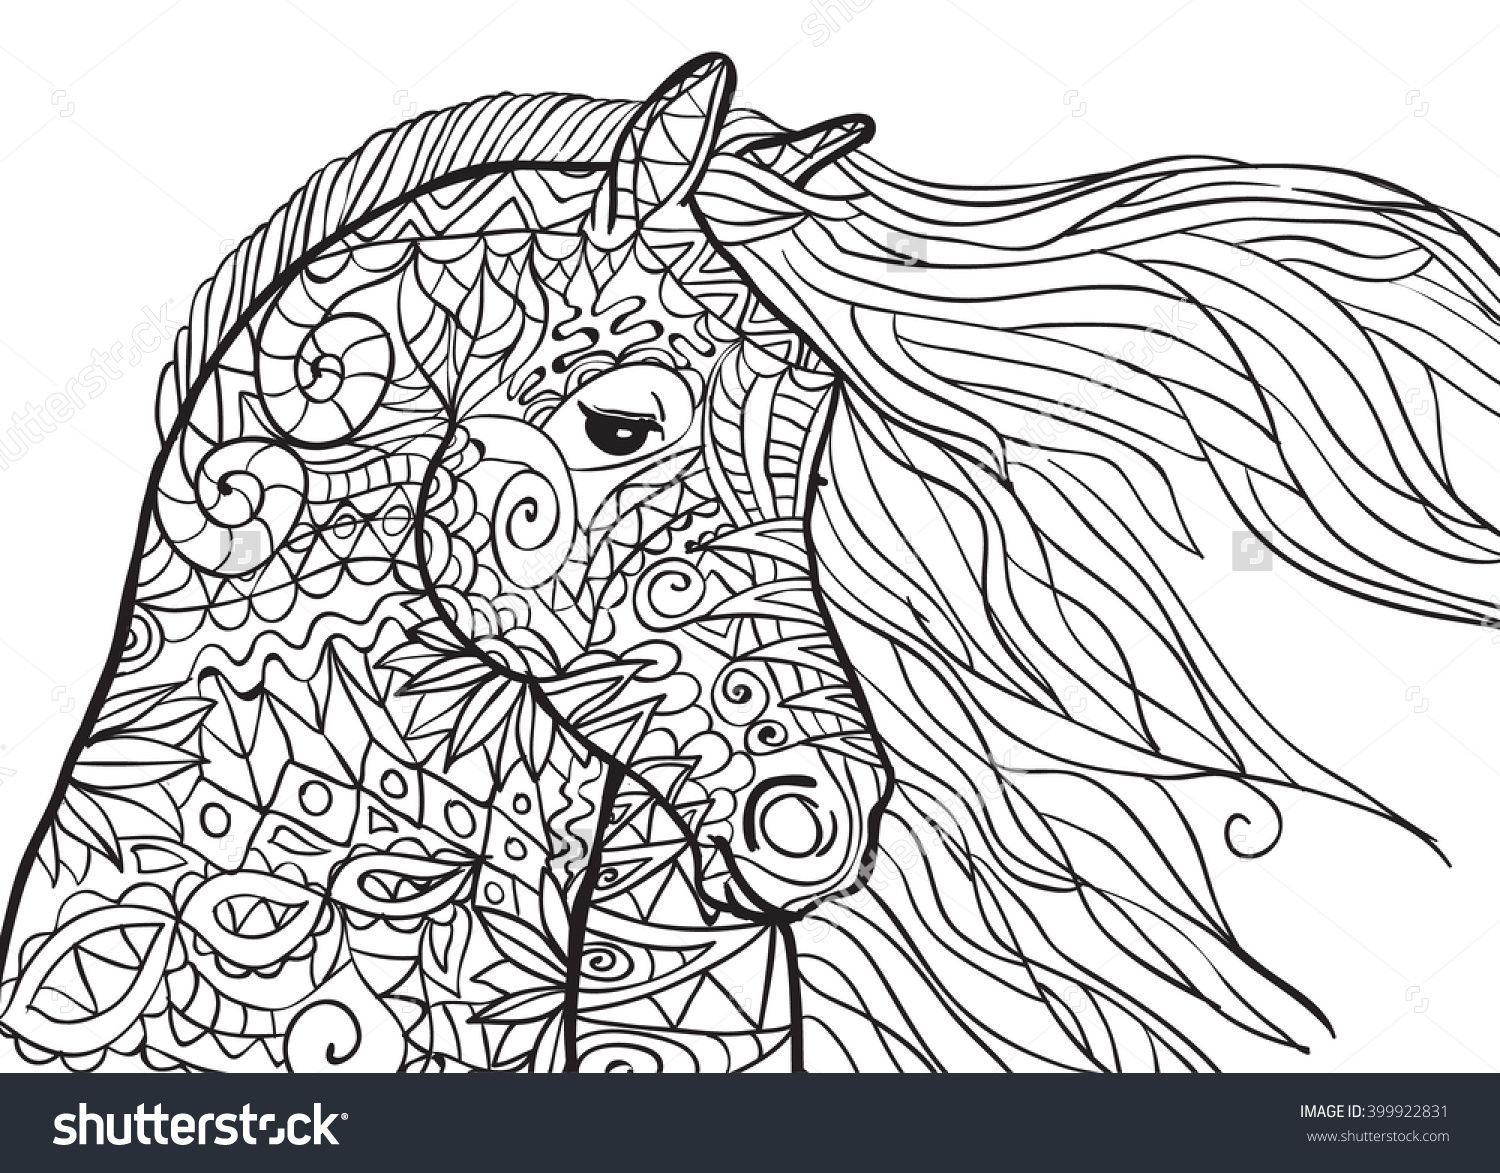 Hand Drawn Coloring Pages With Horse